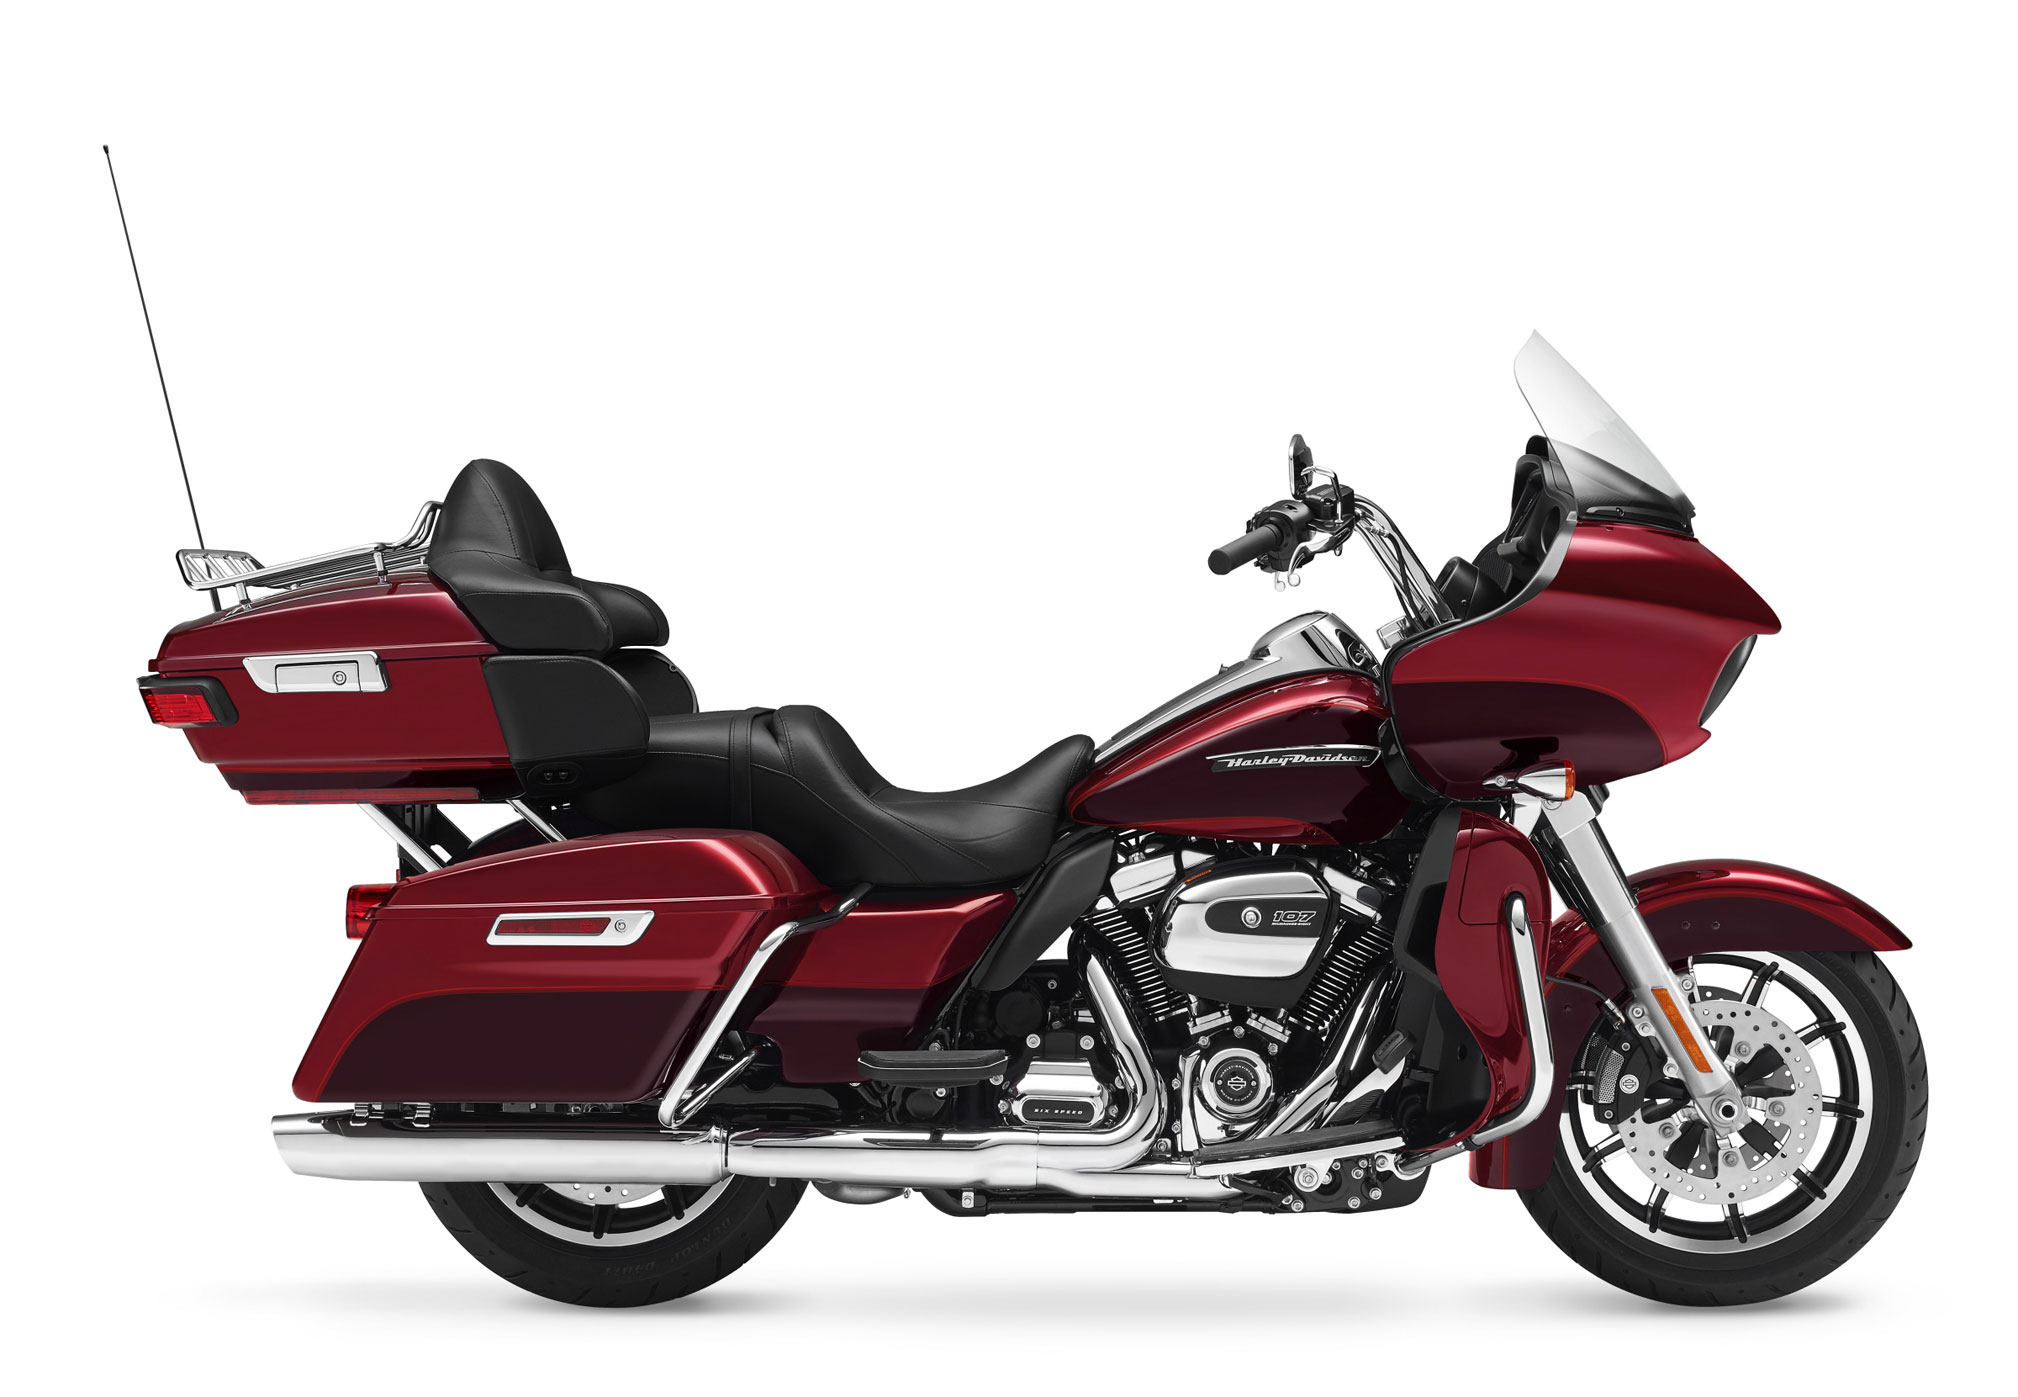 Difference Between Street Glide And Road Glide >> 2018 Harley-Davidson Road Glide Ultra Review - TotalMotorcycle